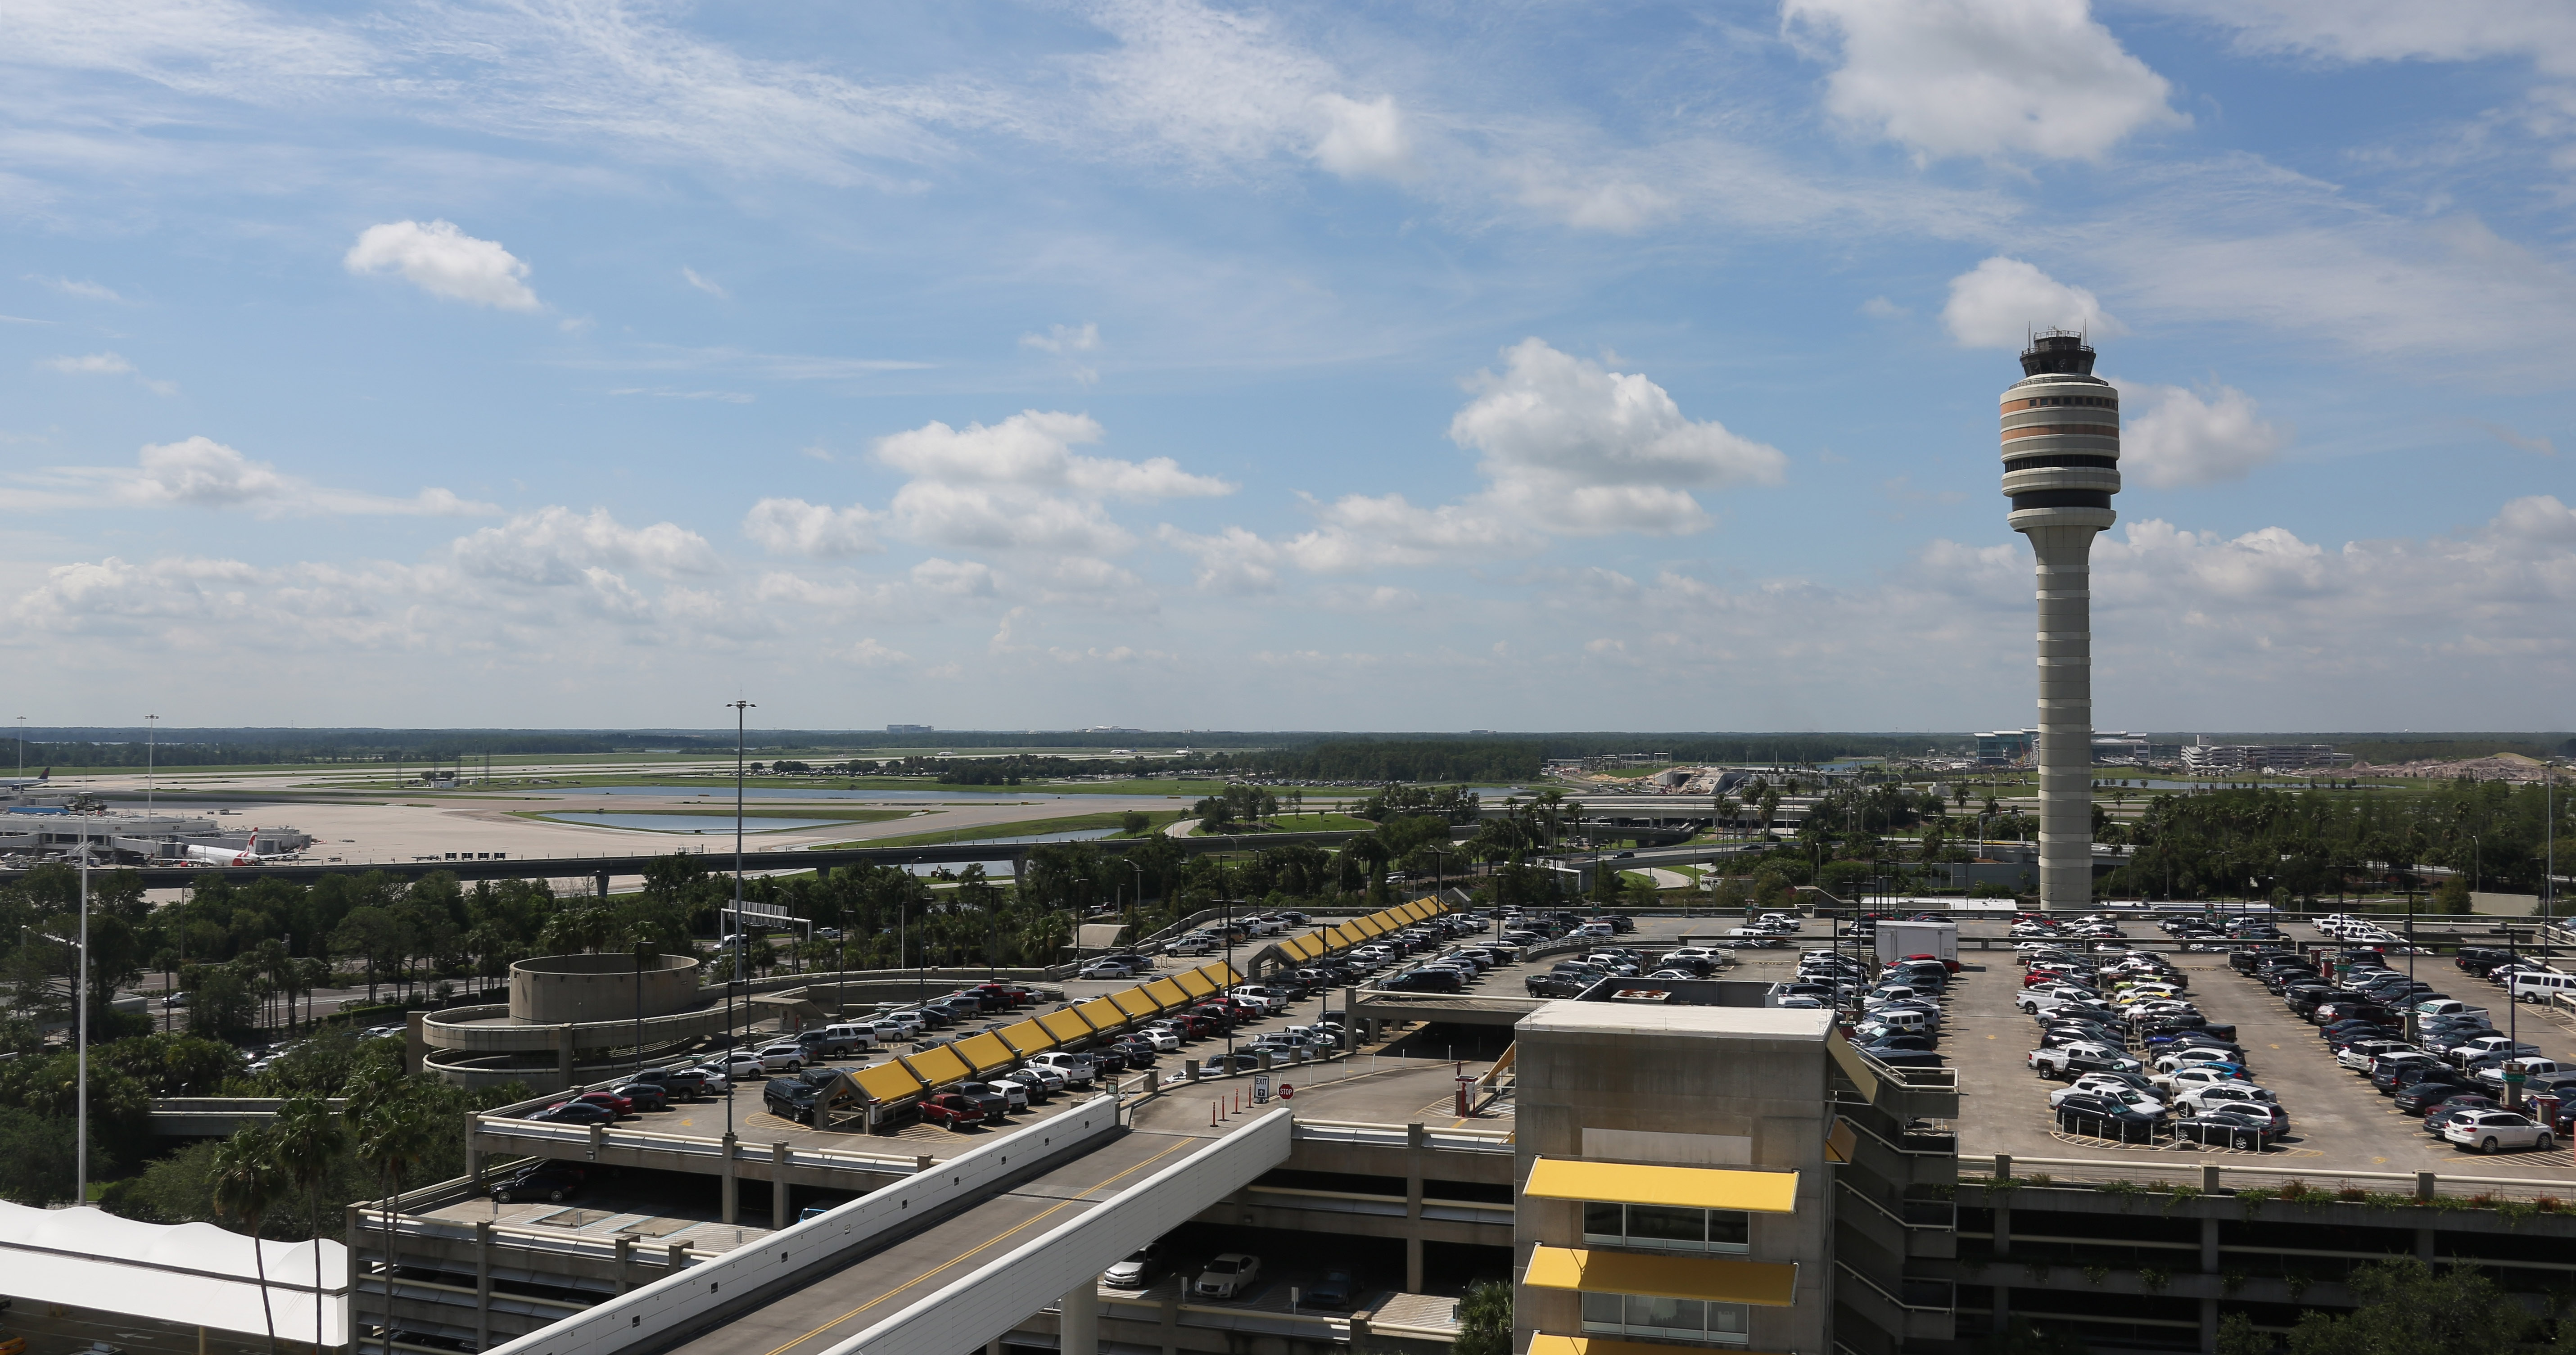 Battery explodes in bag at Orlando airport, causes panic and evacuation